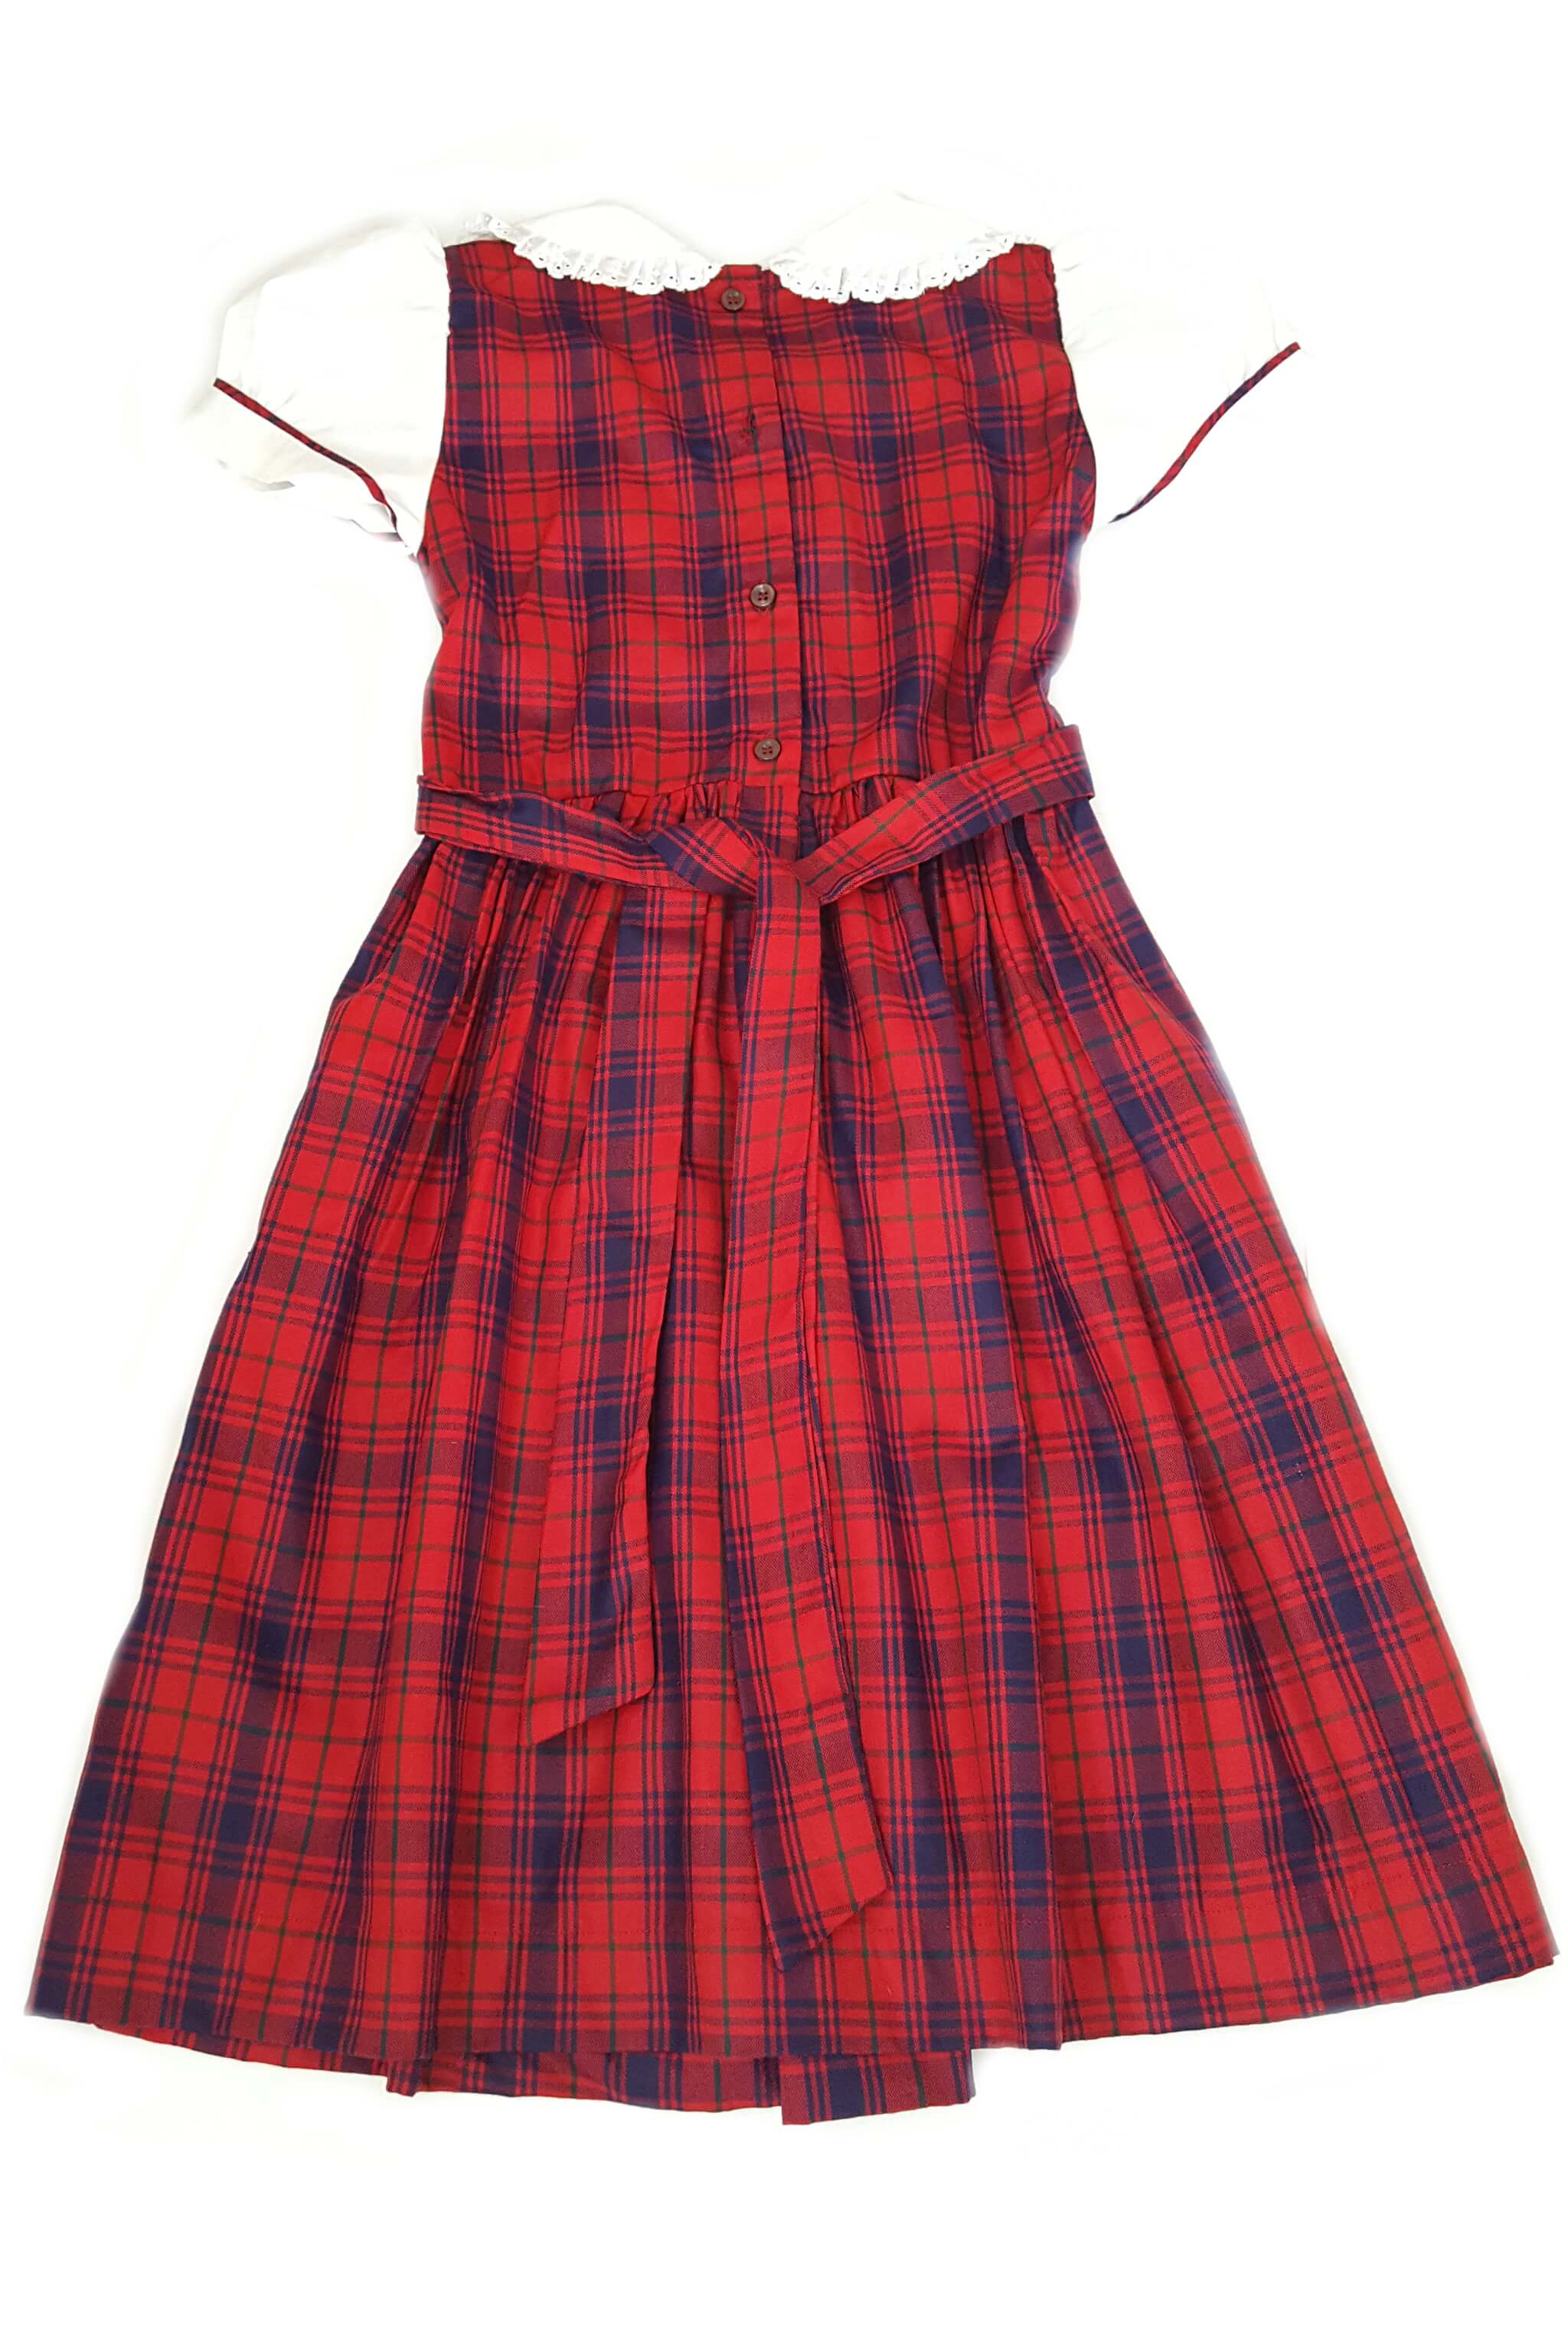 Traditional and classic red and navy plaid smocked dress with button back opening and matching tartan sash to tie at the waist for 7-8 year and 11-12 year old girls